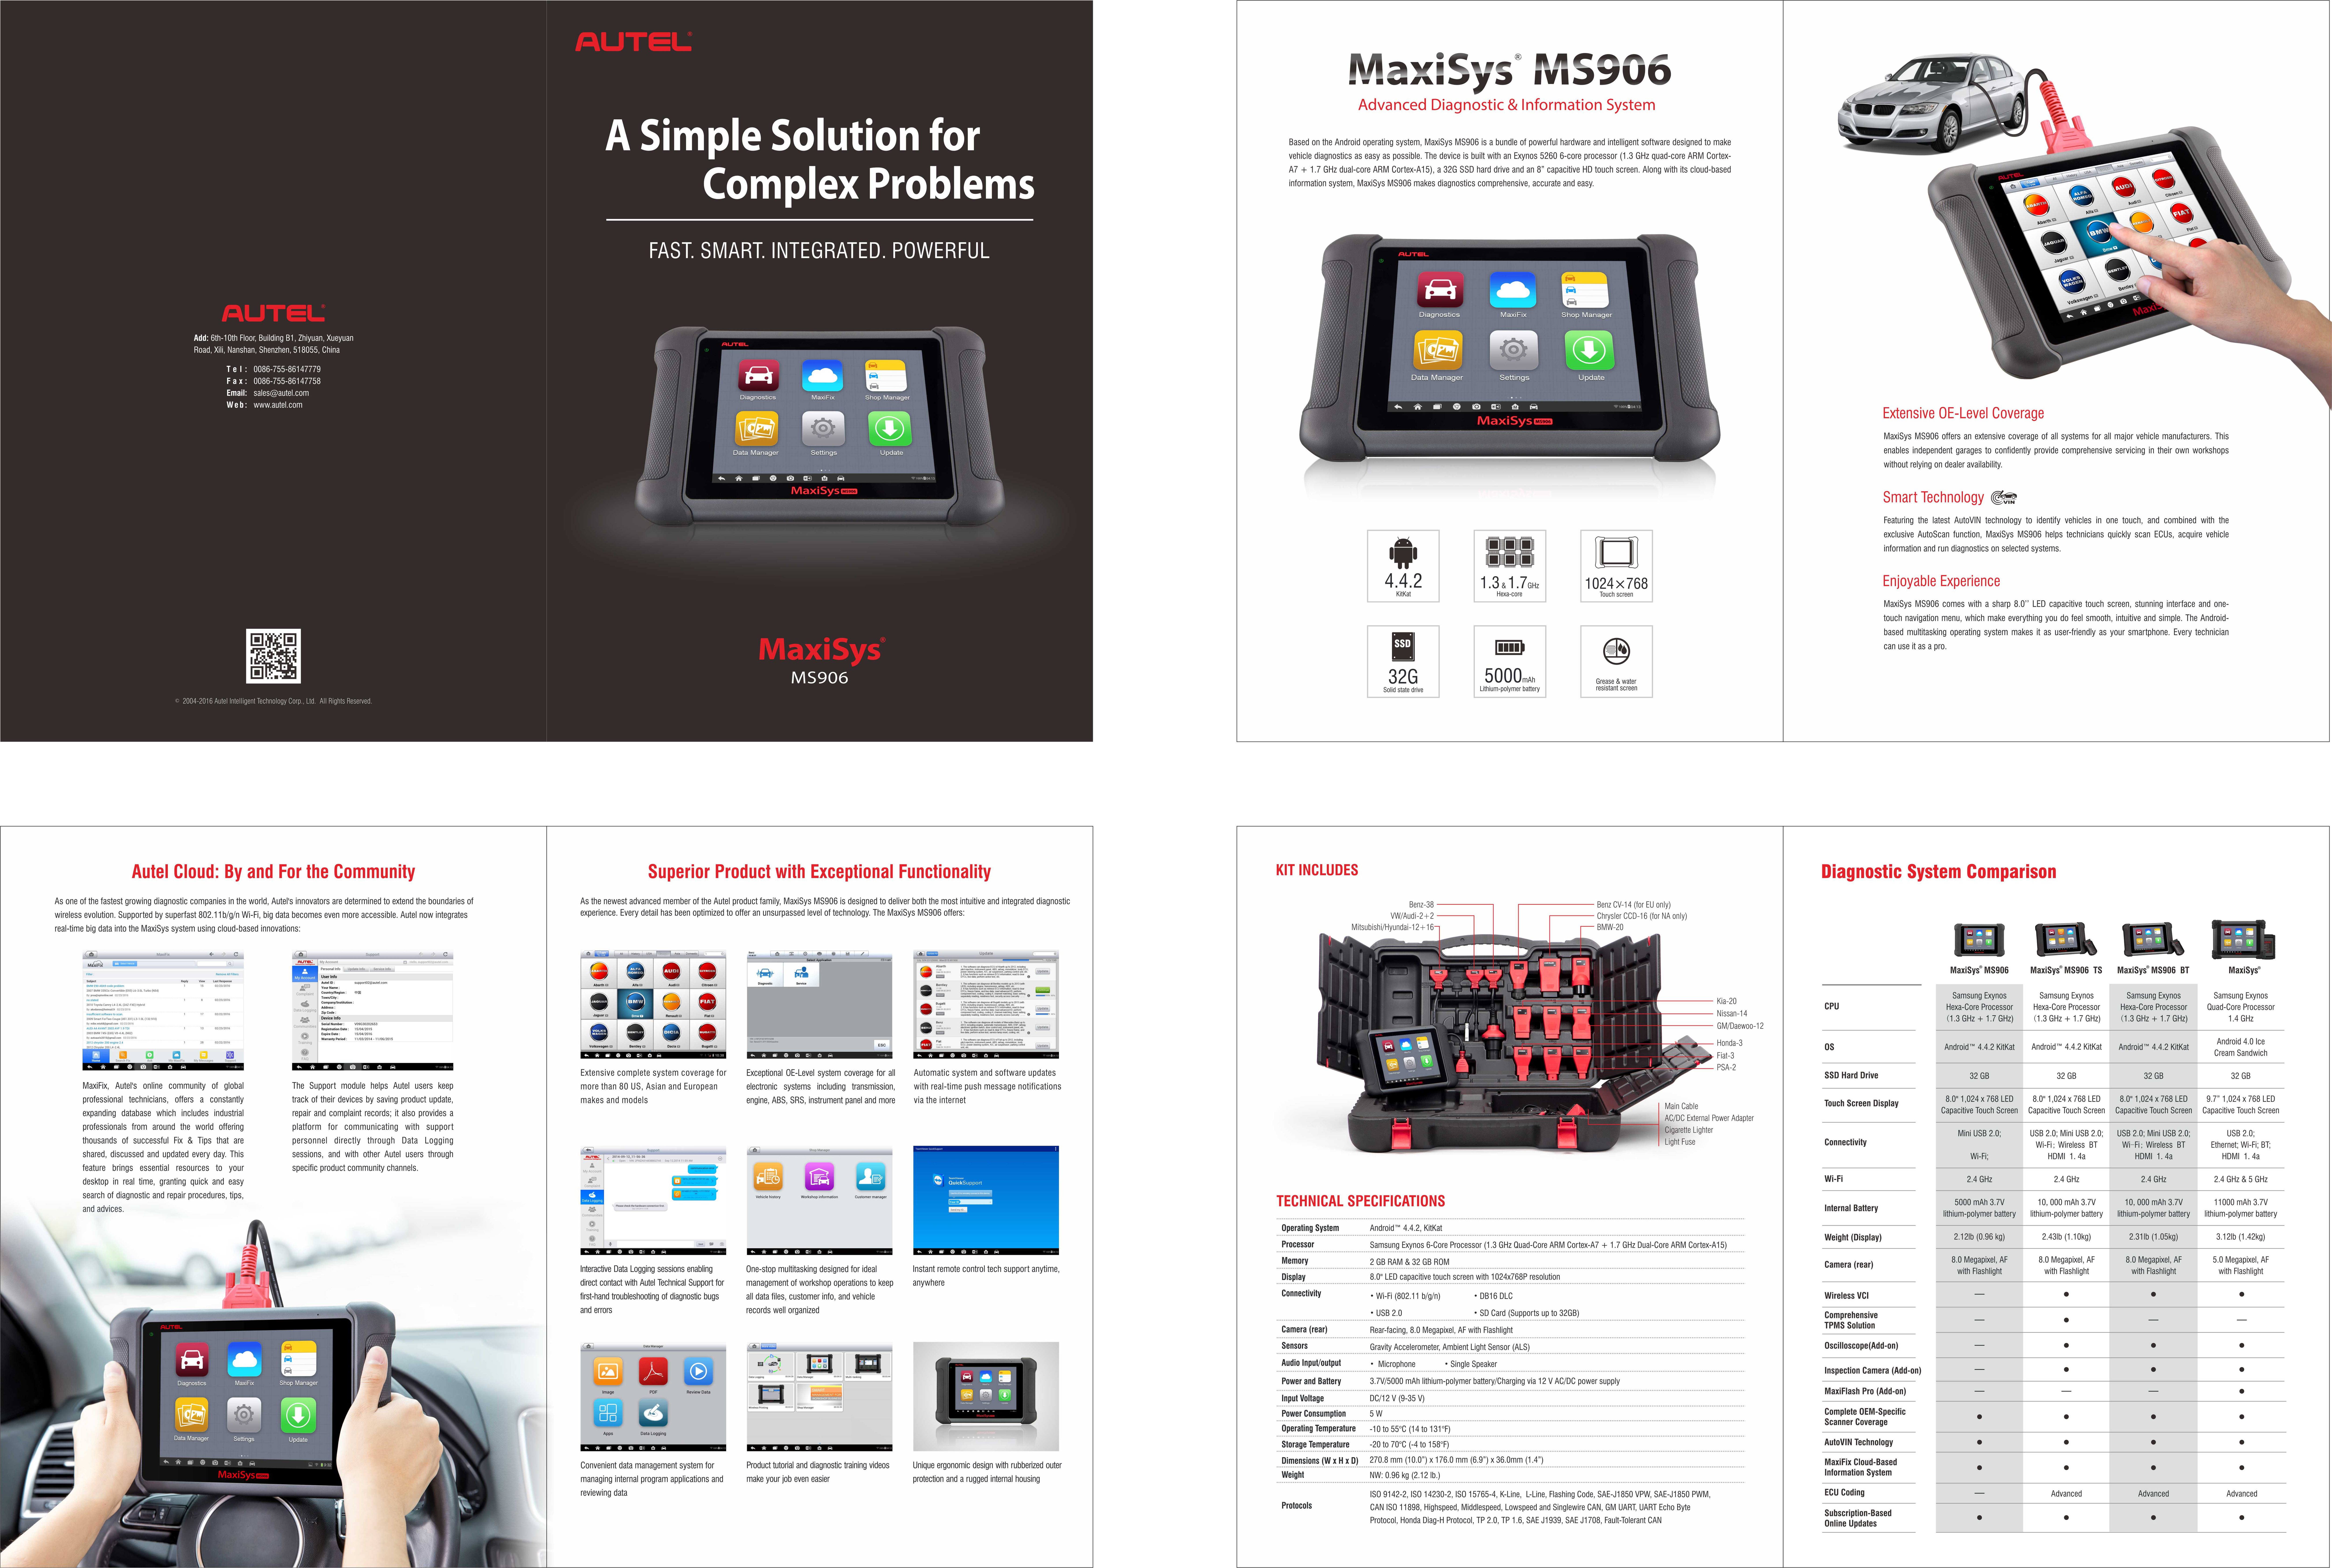 Autel MaxiSYS MS906 Auto Diagnostic Scanner Introduction